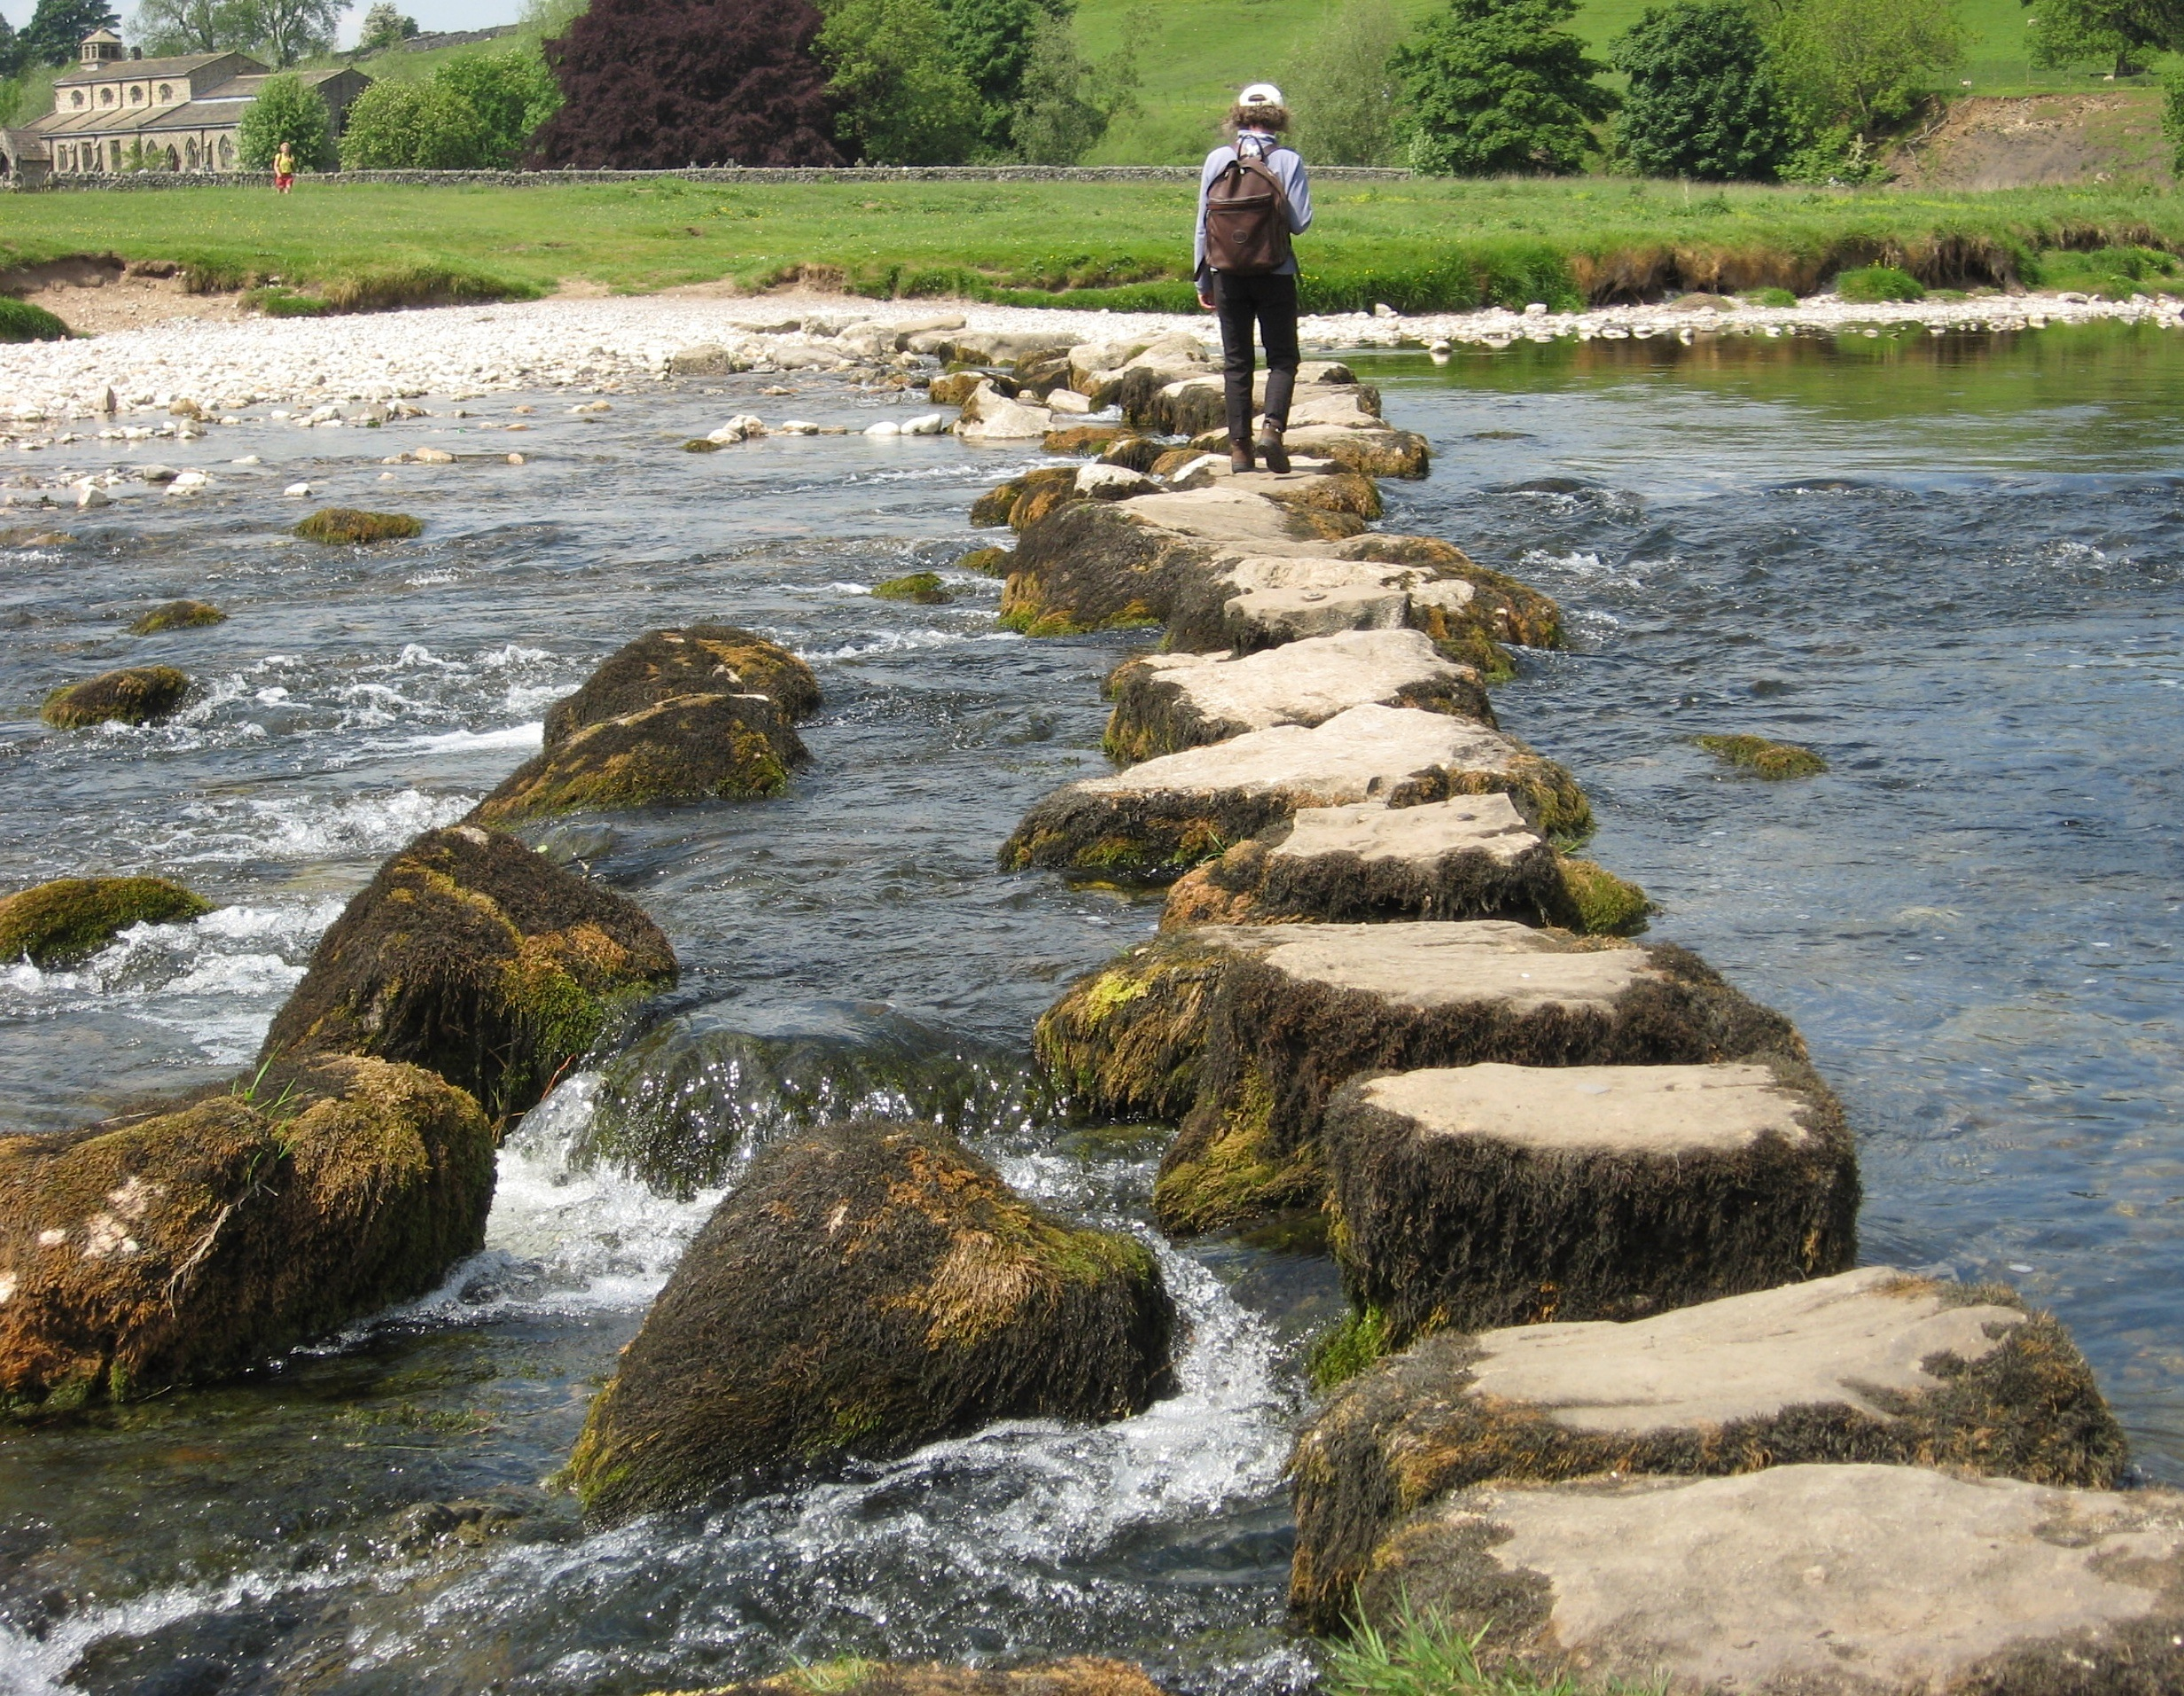 File:Stepping stones 3.jpg Stepping Stones